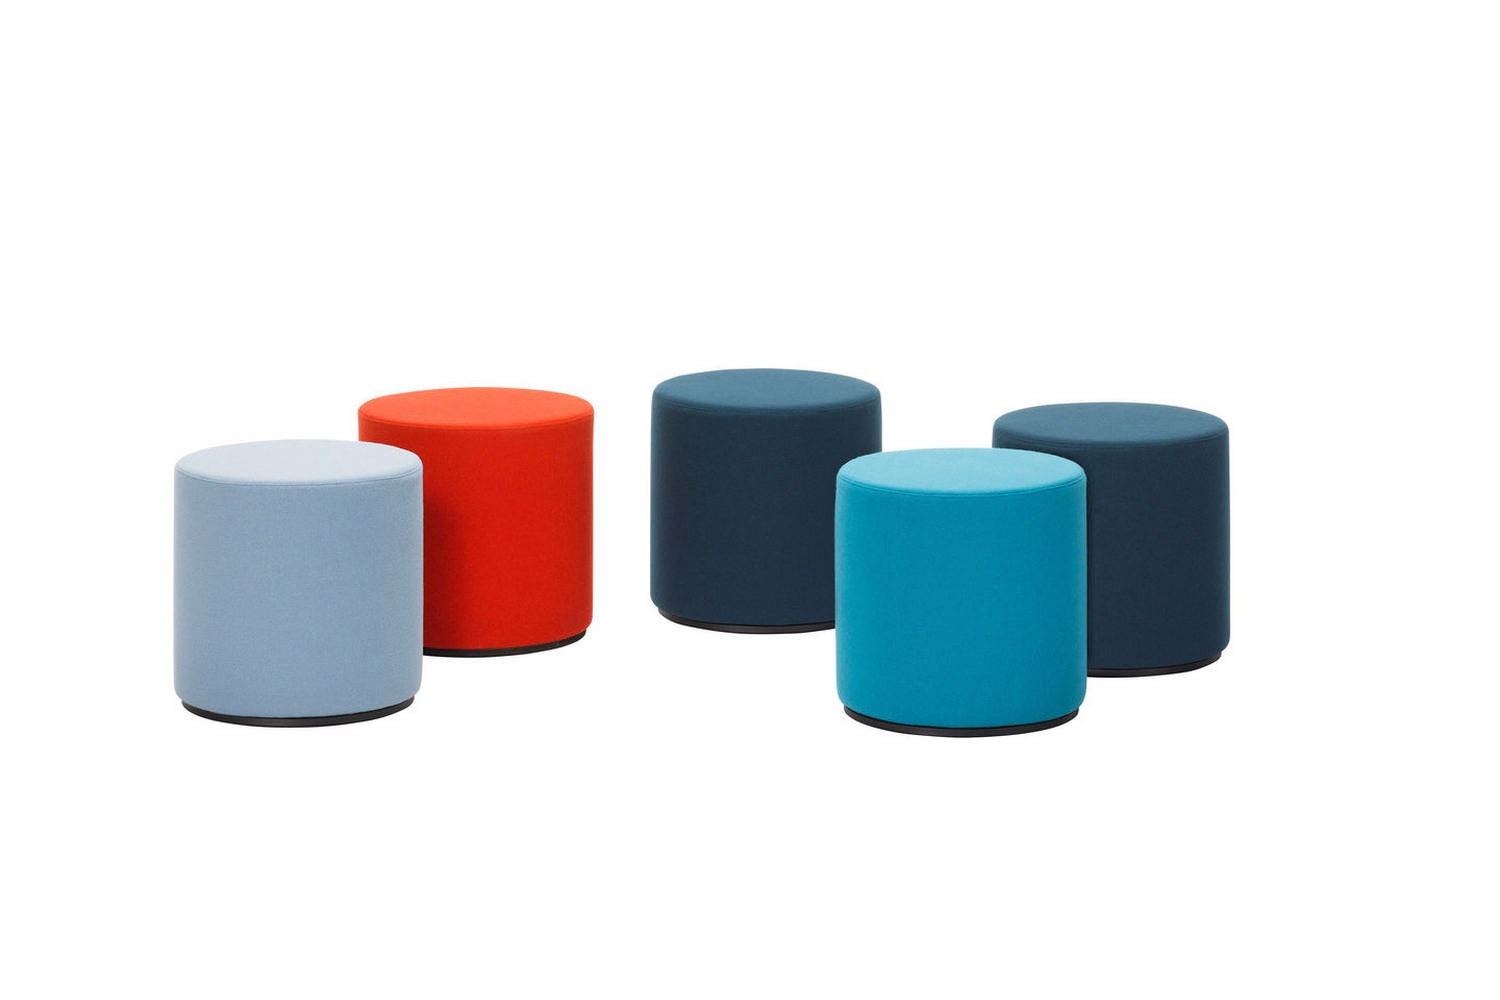 Visiona Stool by Verner Panton for Vitra